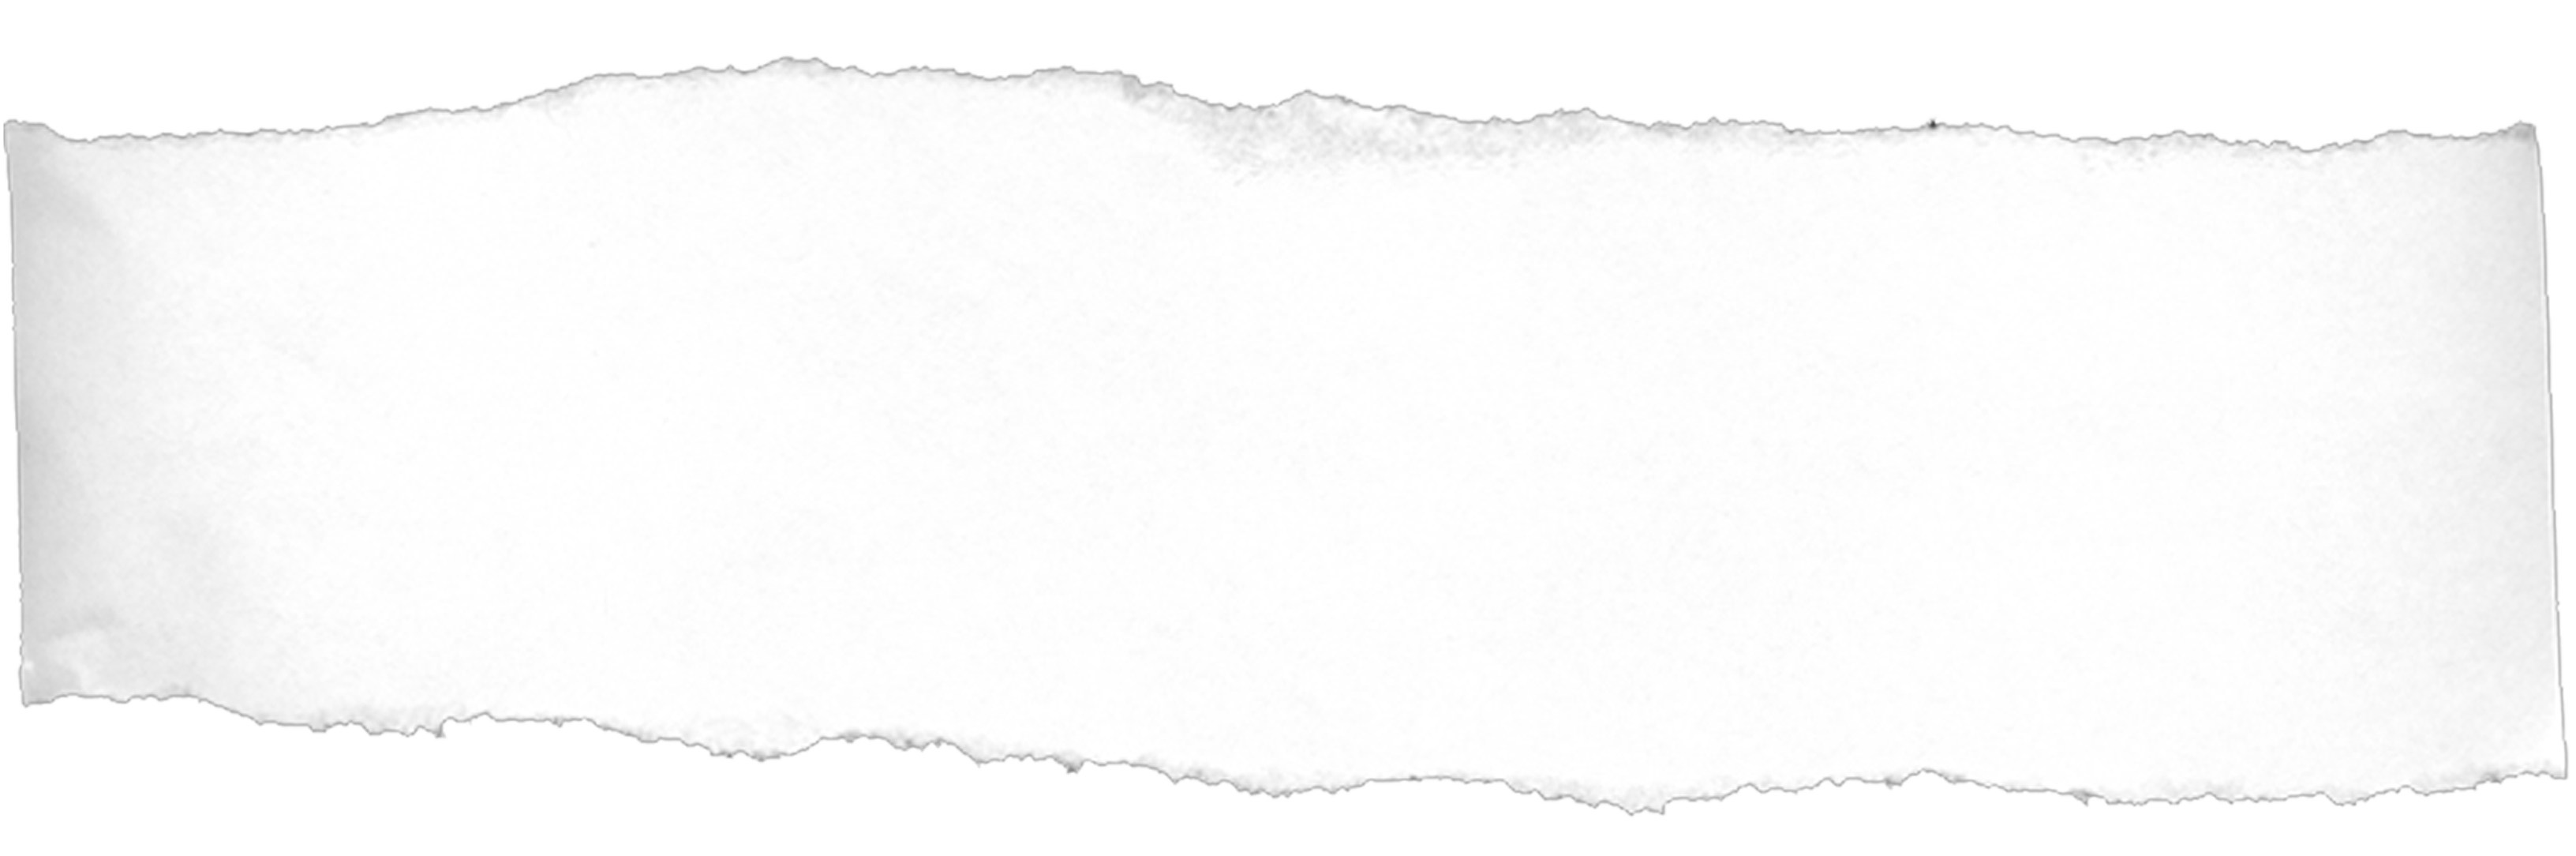 Ripped paper up. Torn clipart free download